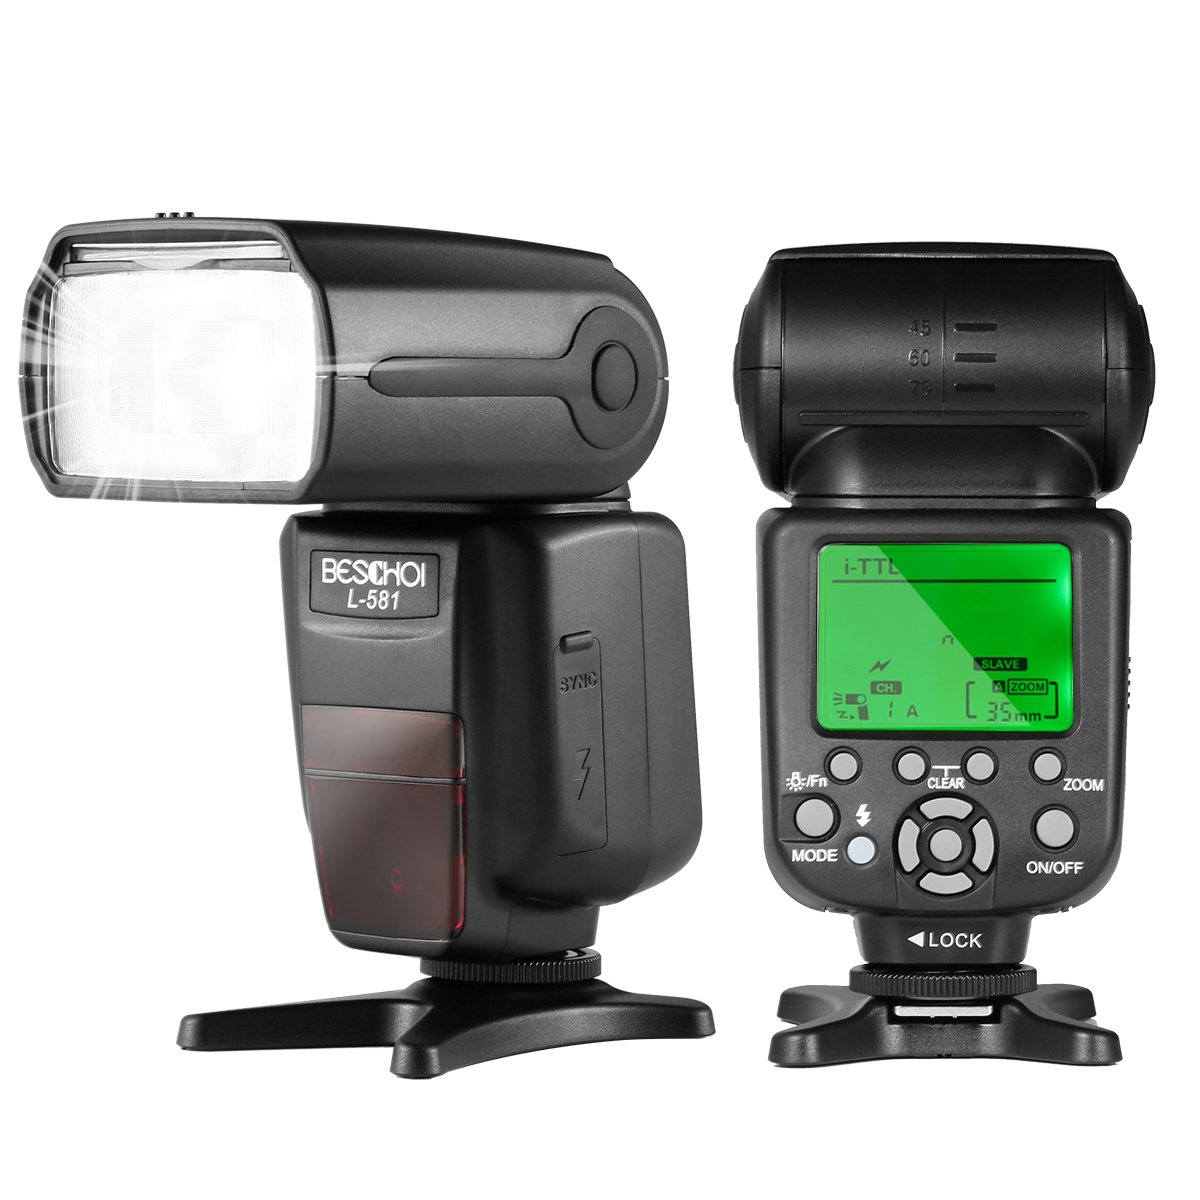 Beschoi I-TTL Speedlite Flash Professional Camera Flash with Master/Slave Wireless Control, High Speed Sync Compatible with Nikon DSLR Camera by Beschoi